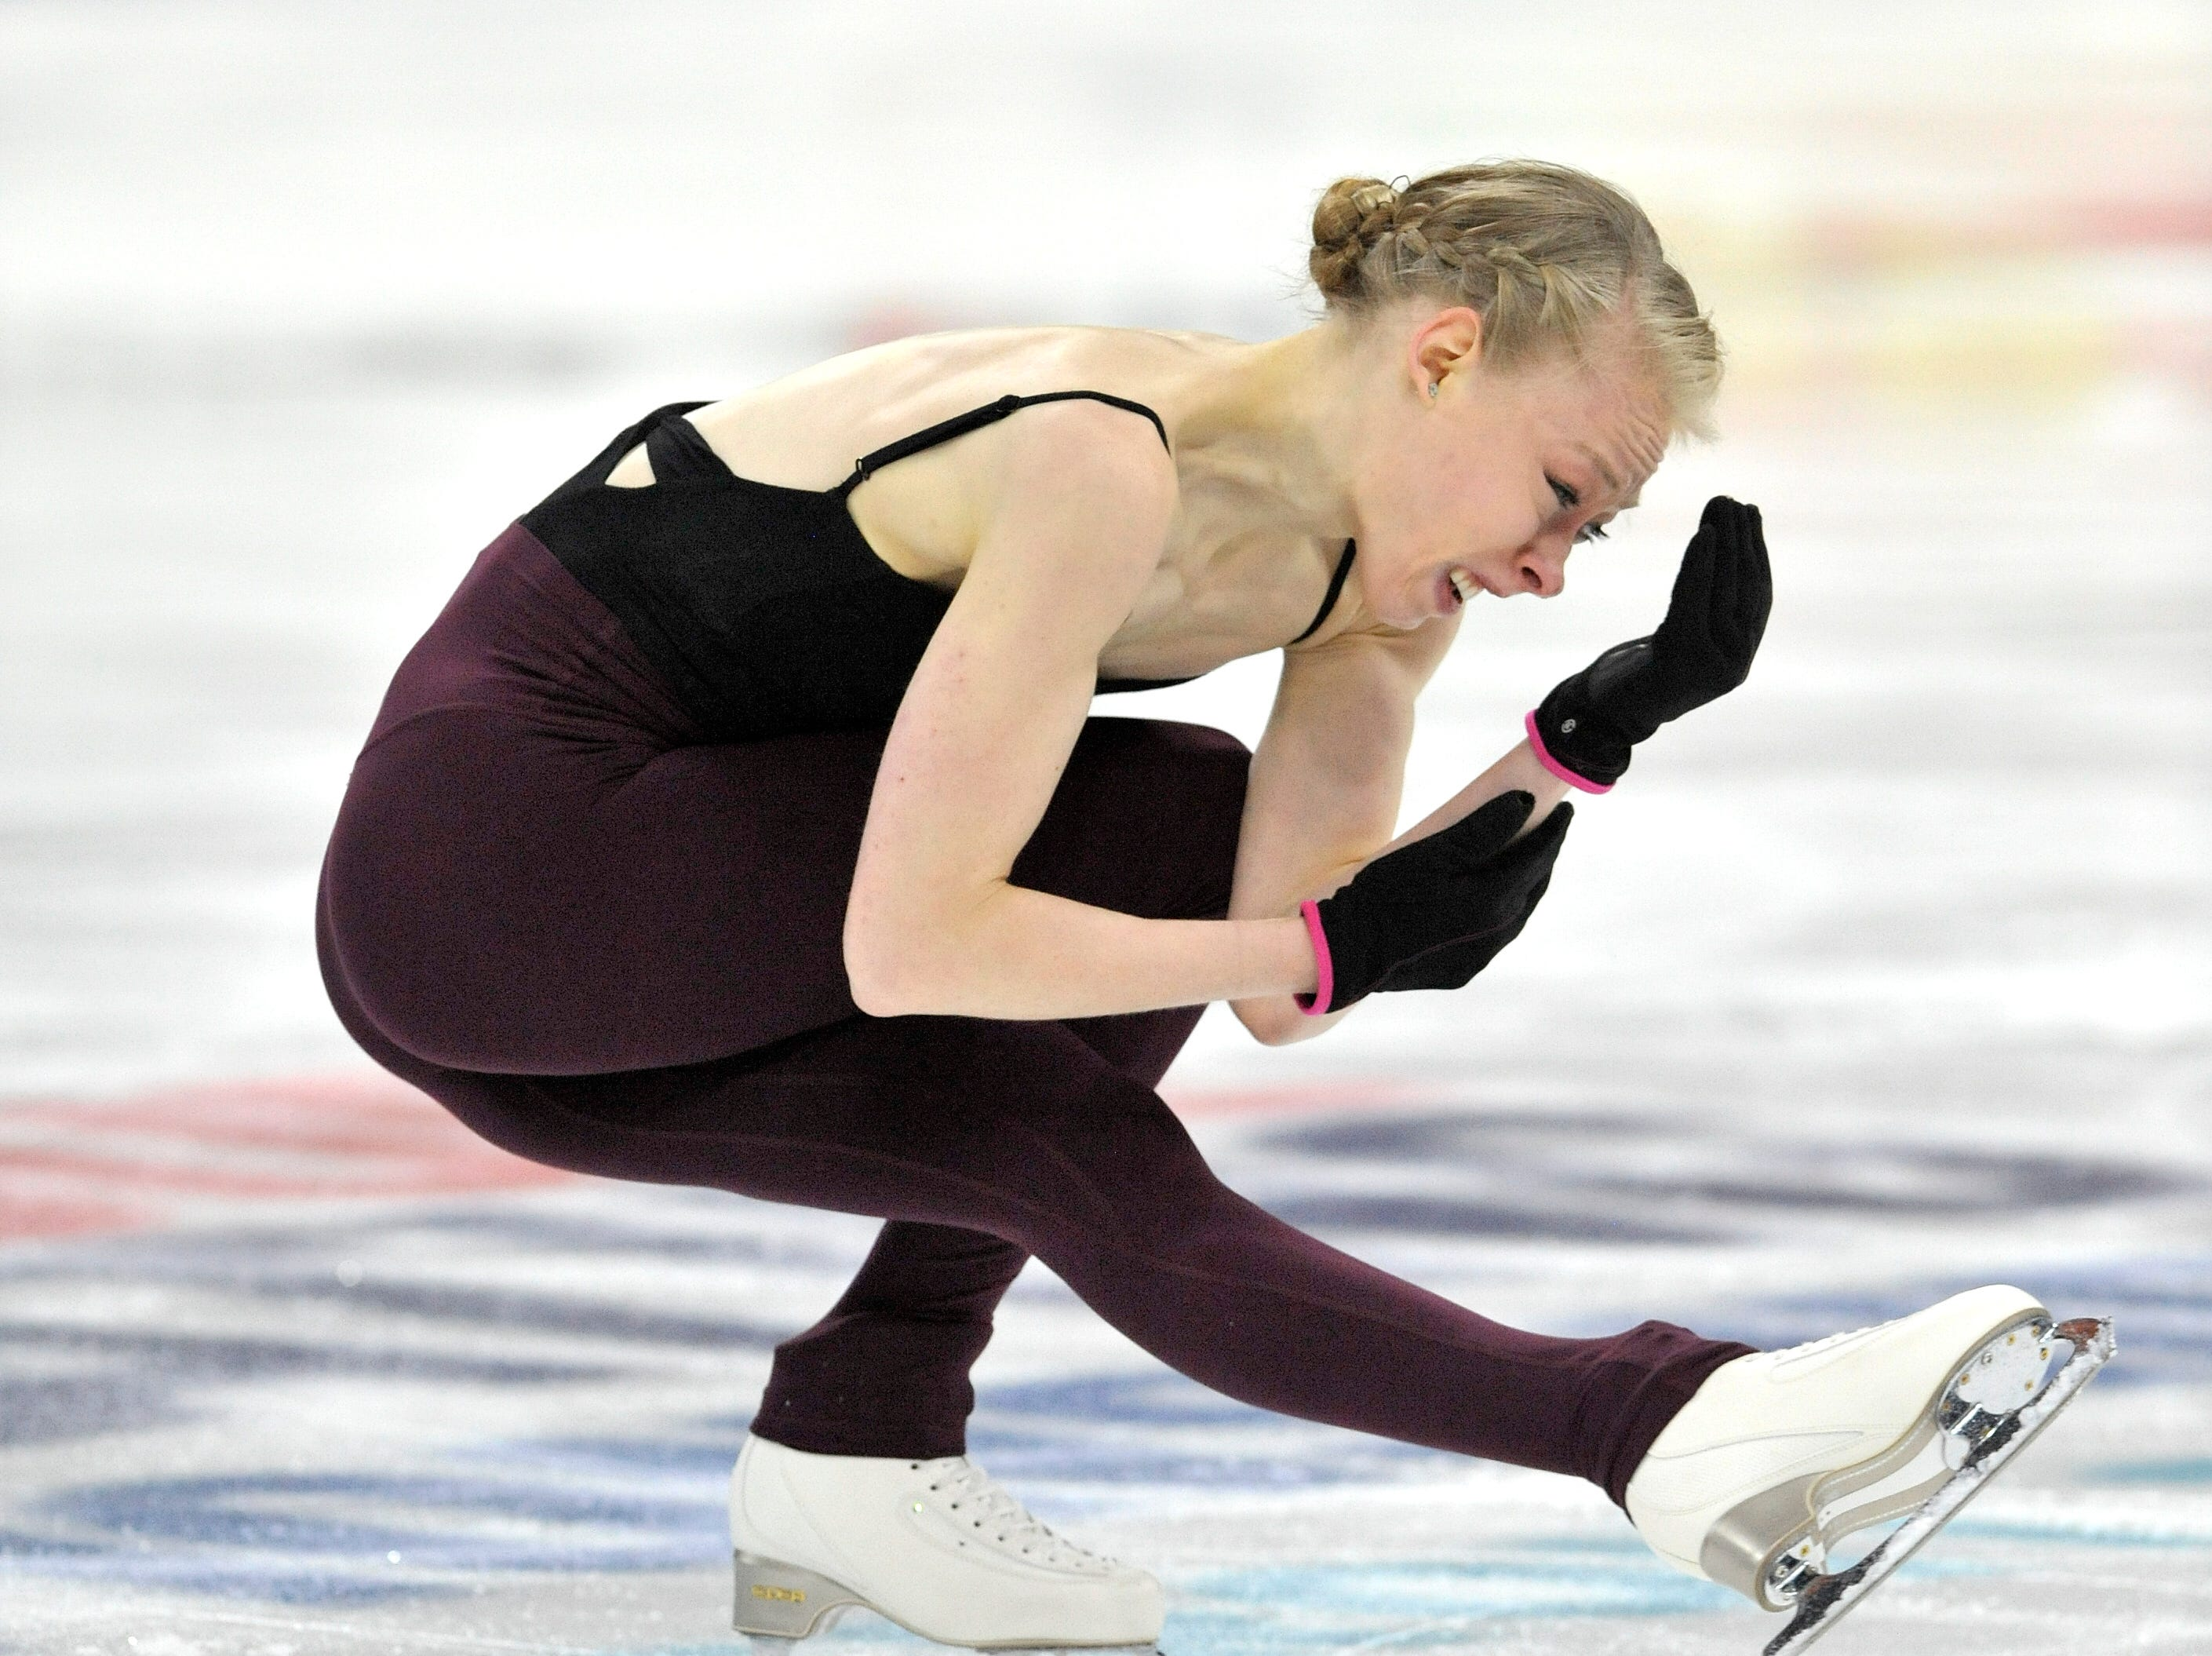 Ladies singles Bradie Tennell practices during the 2019 GEICO U.S. Figure Skating Championship at Little Caesars Arena in Detroit, Tuesday, January 22, 2019.